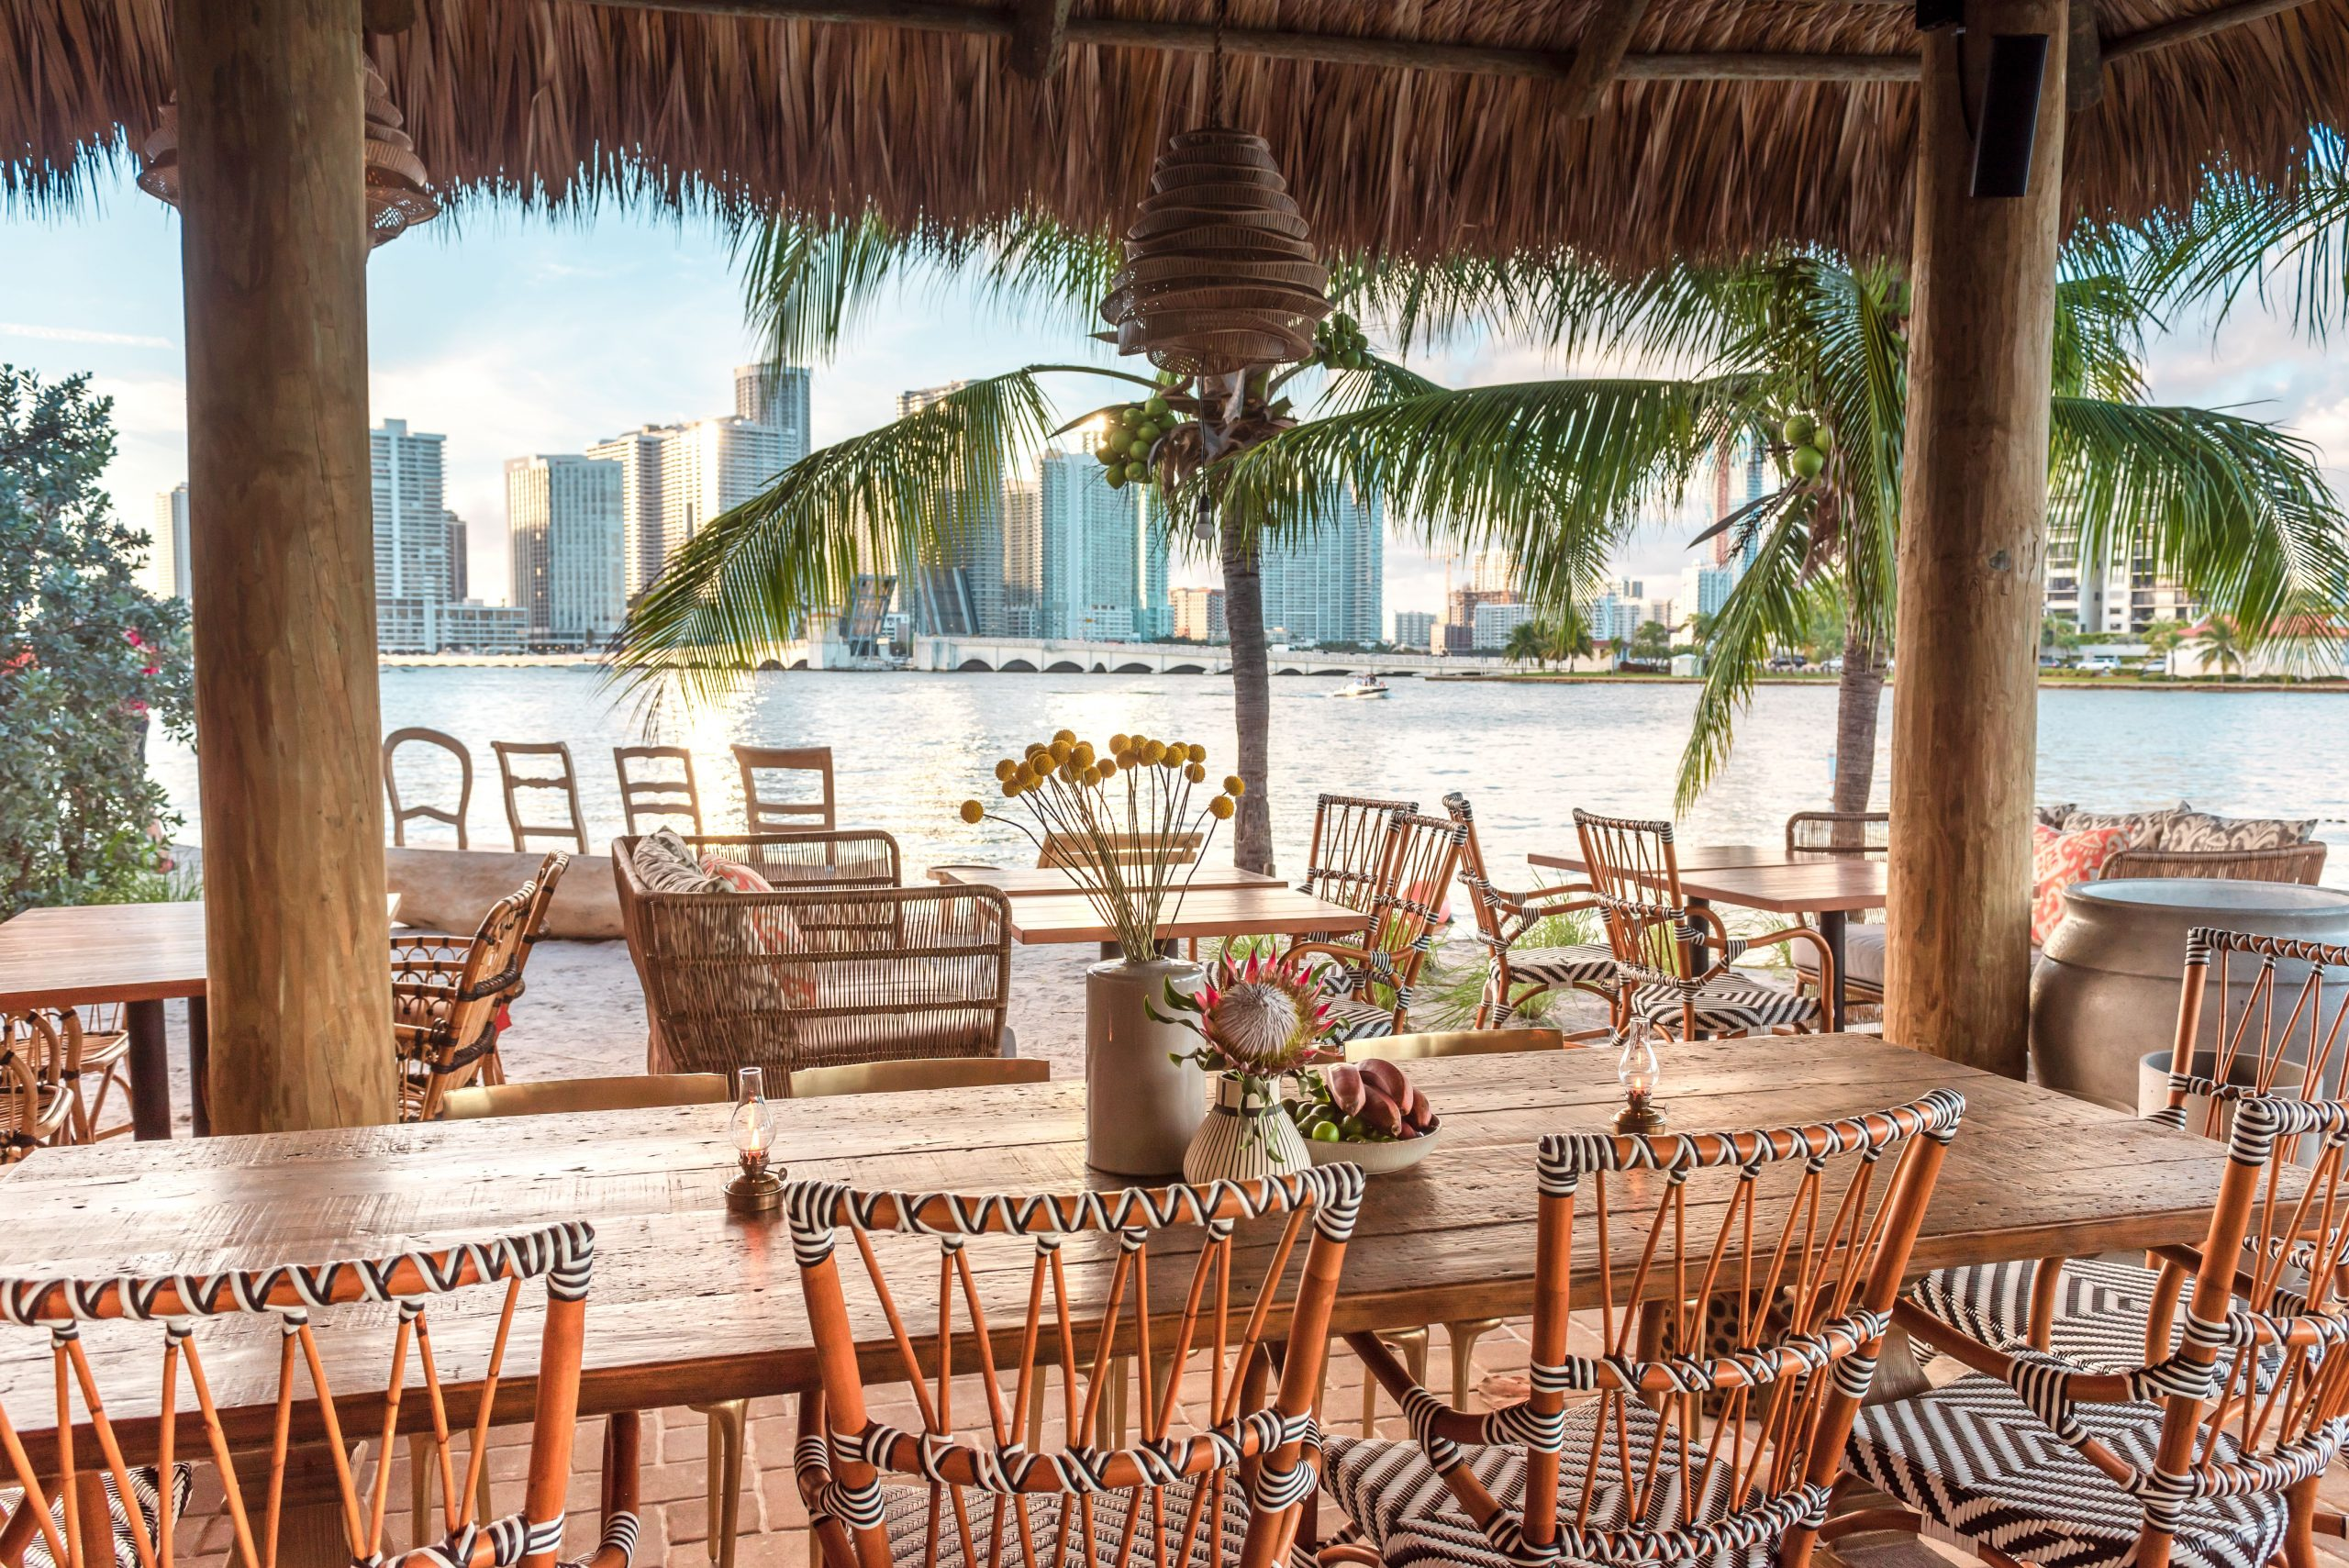 Joia Beach | Miami's New Waterfront Oasis is Now Open